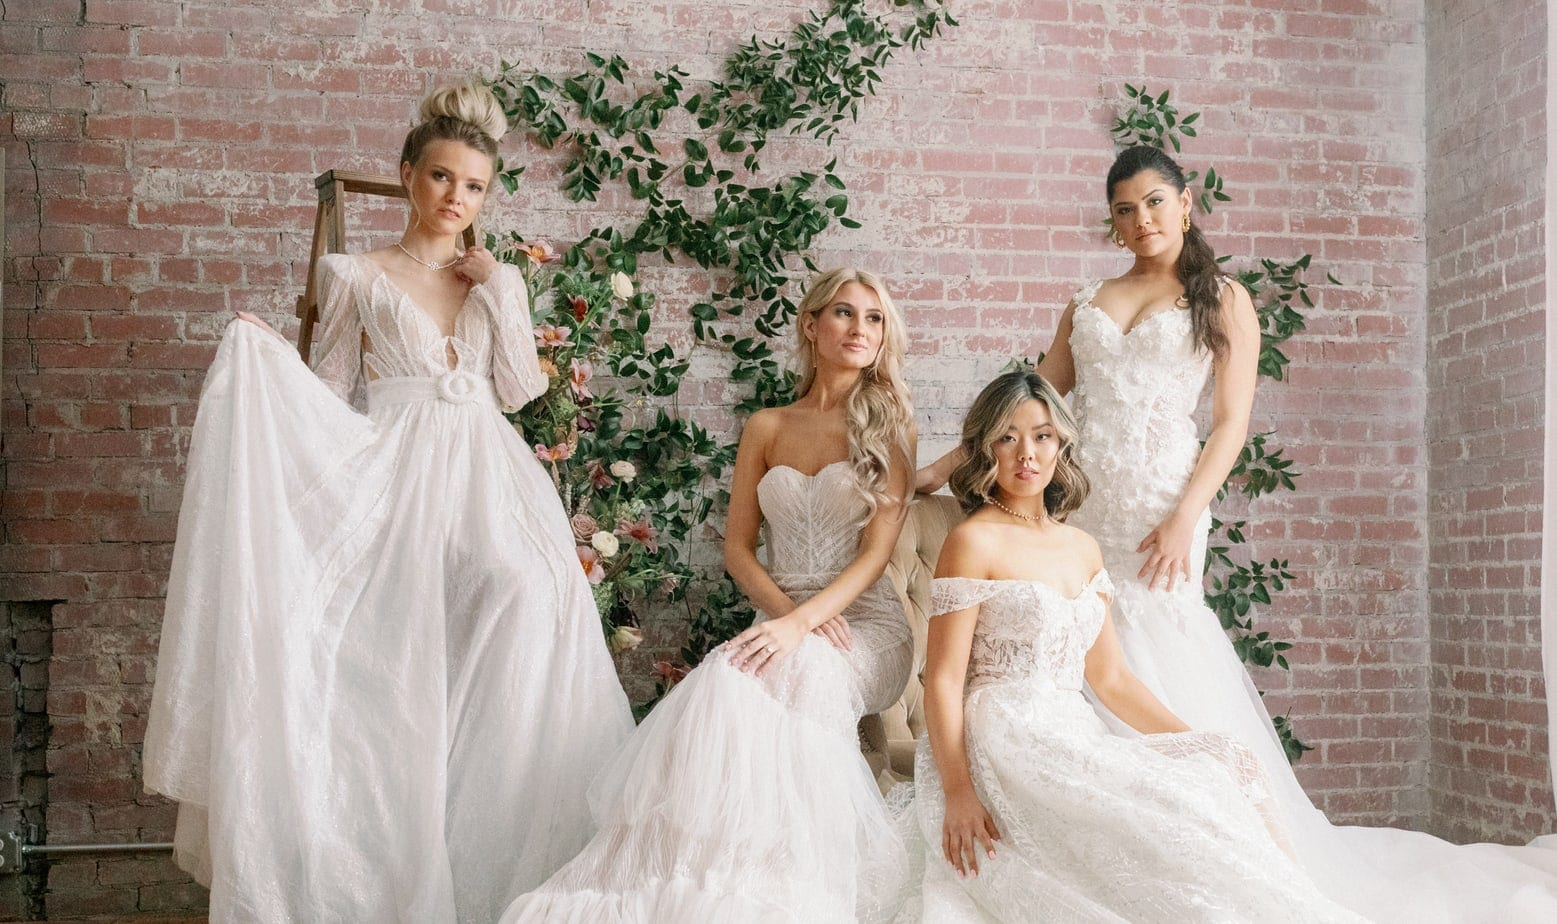 Four women wearing white vintage lace wedding gowns posing in front of light red brick wall with floral greenery running up it